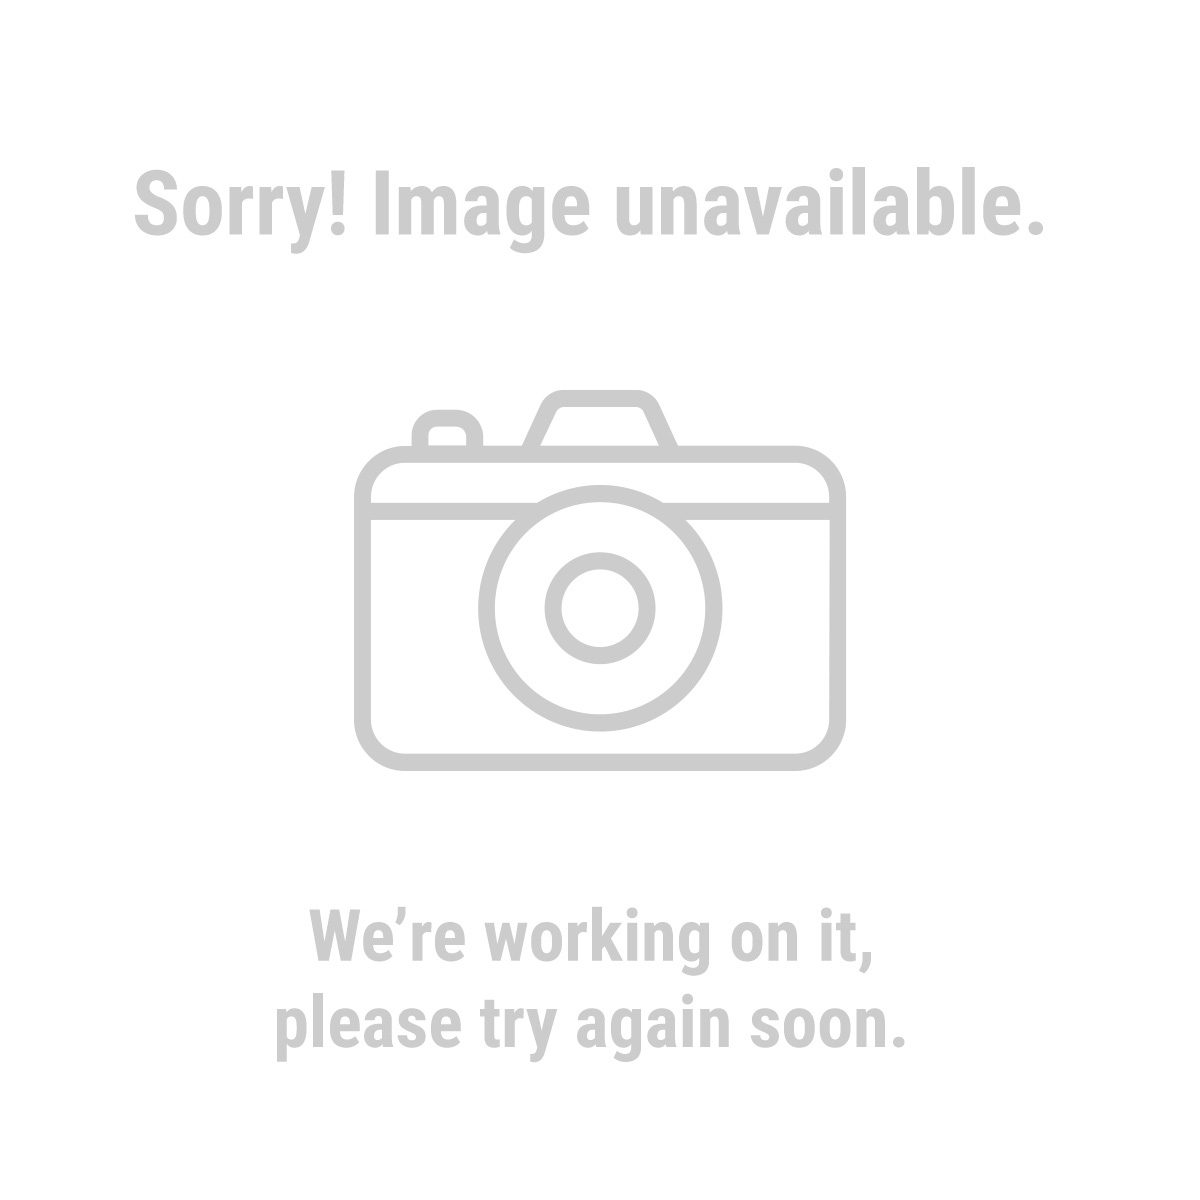 Images Of Tool Storage Drawer Organizer